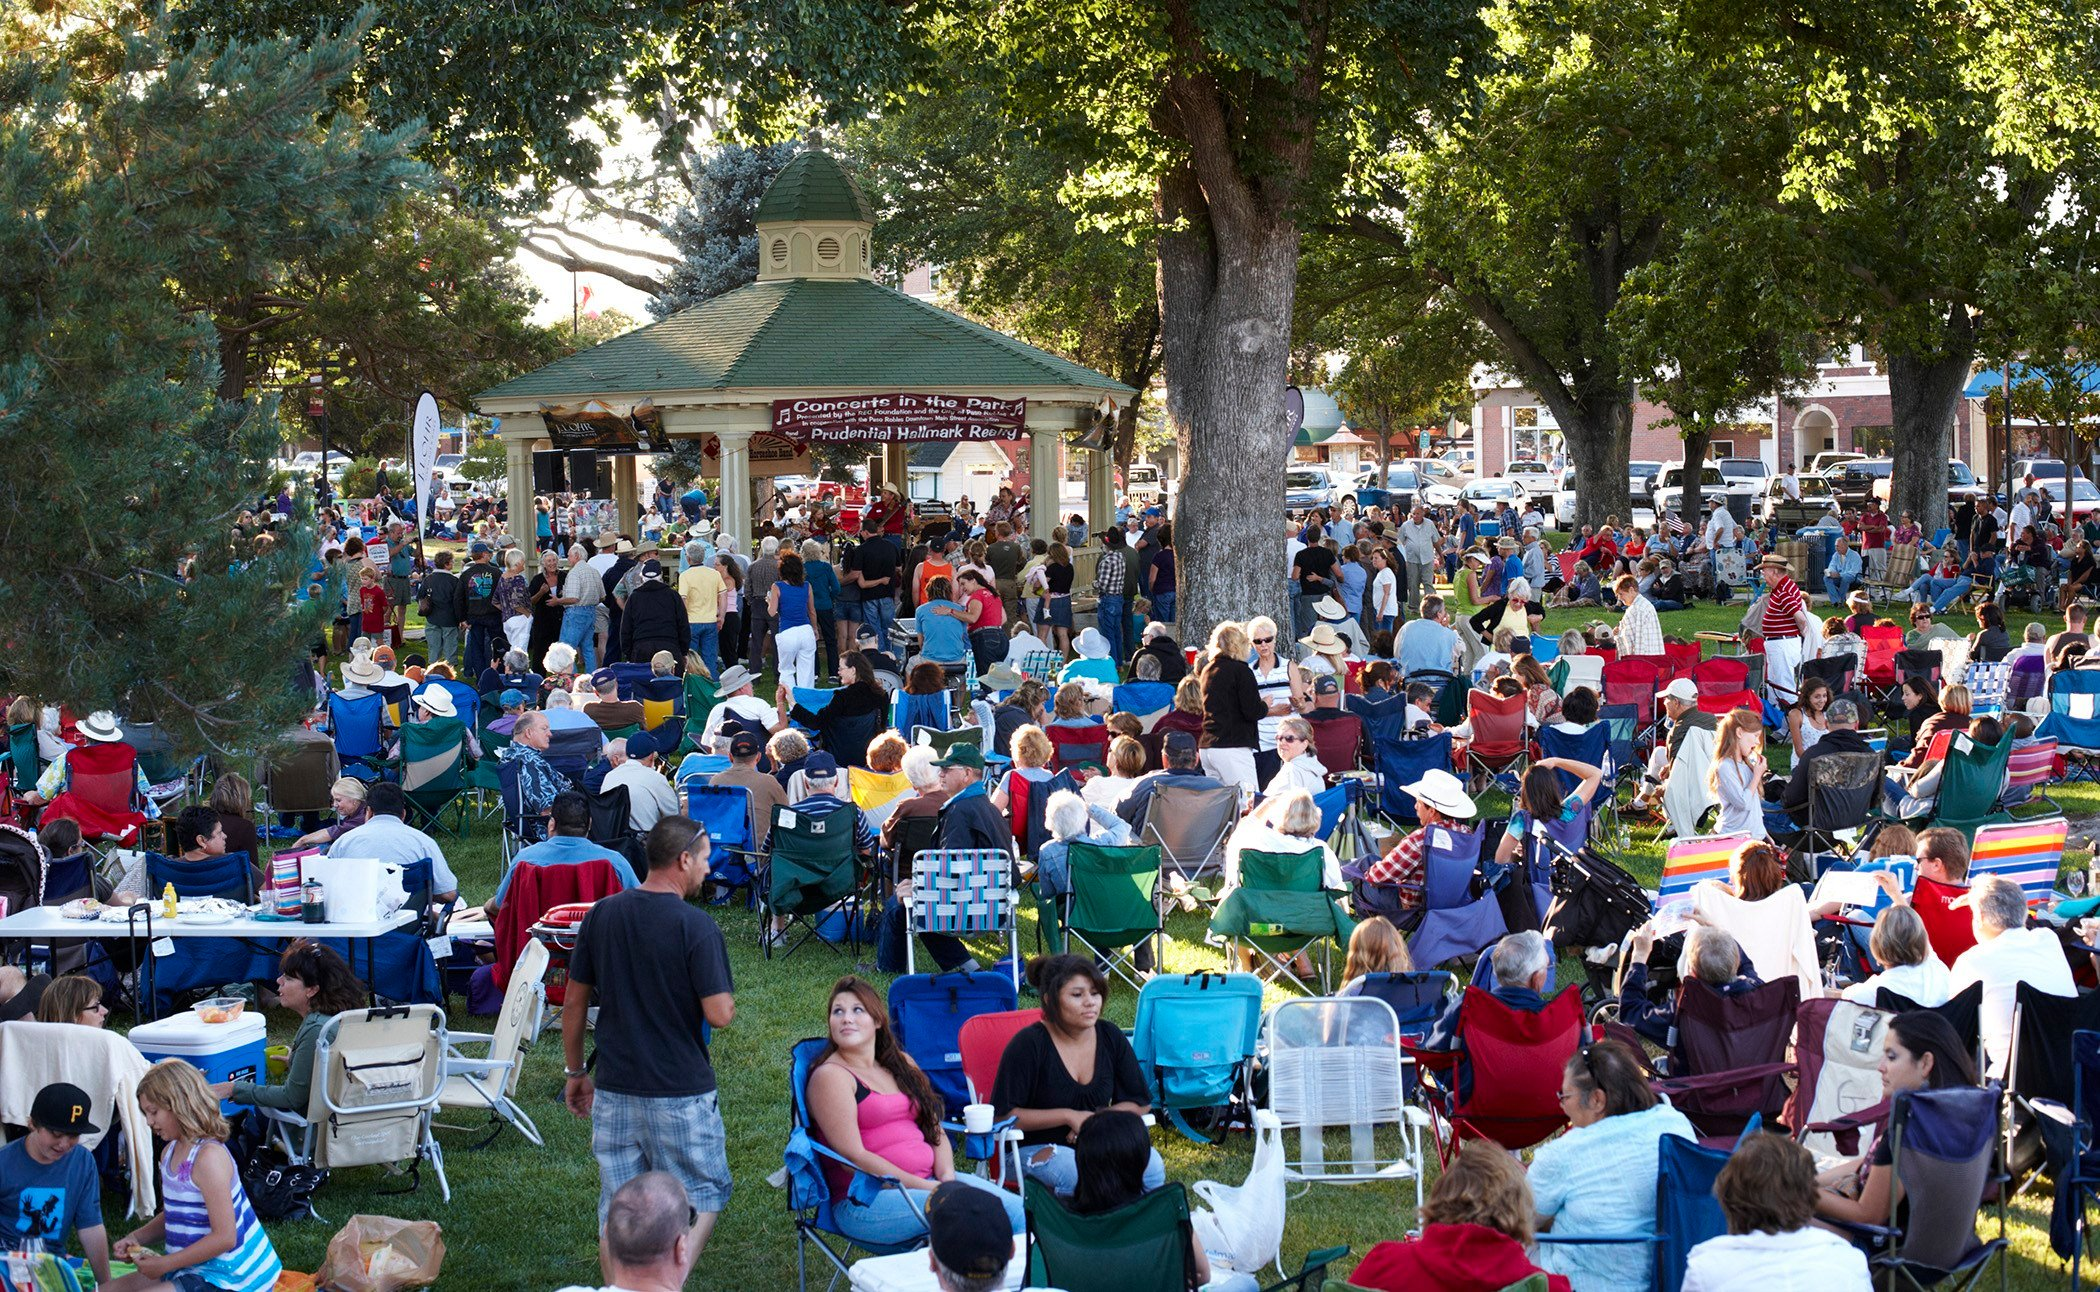 Summer Concerts in the Park (Photo courtesy City of Paso Robles)